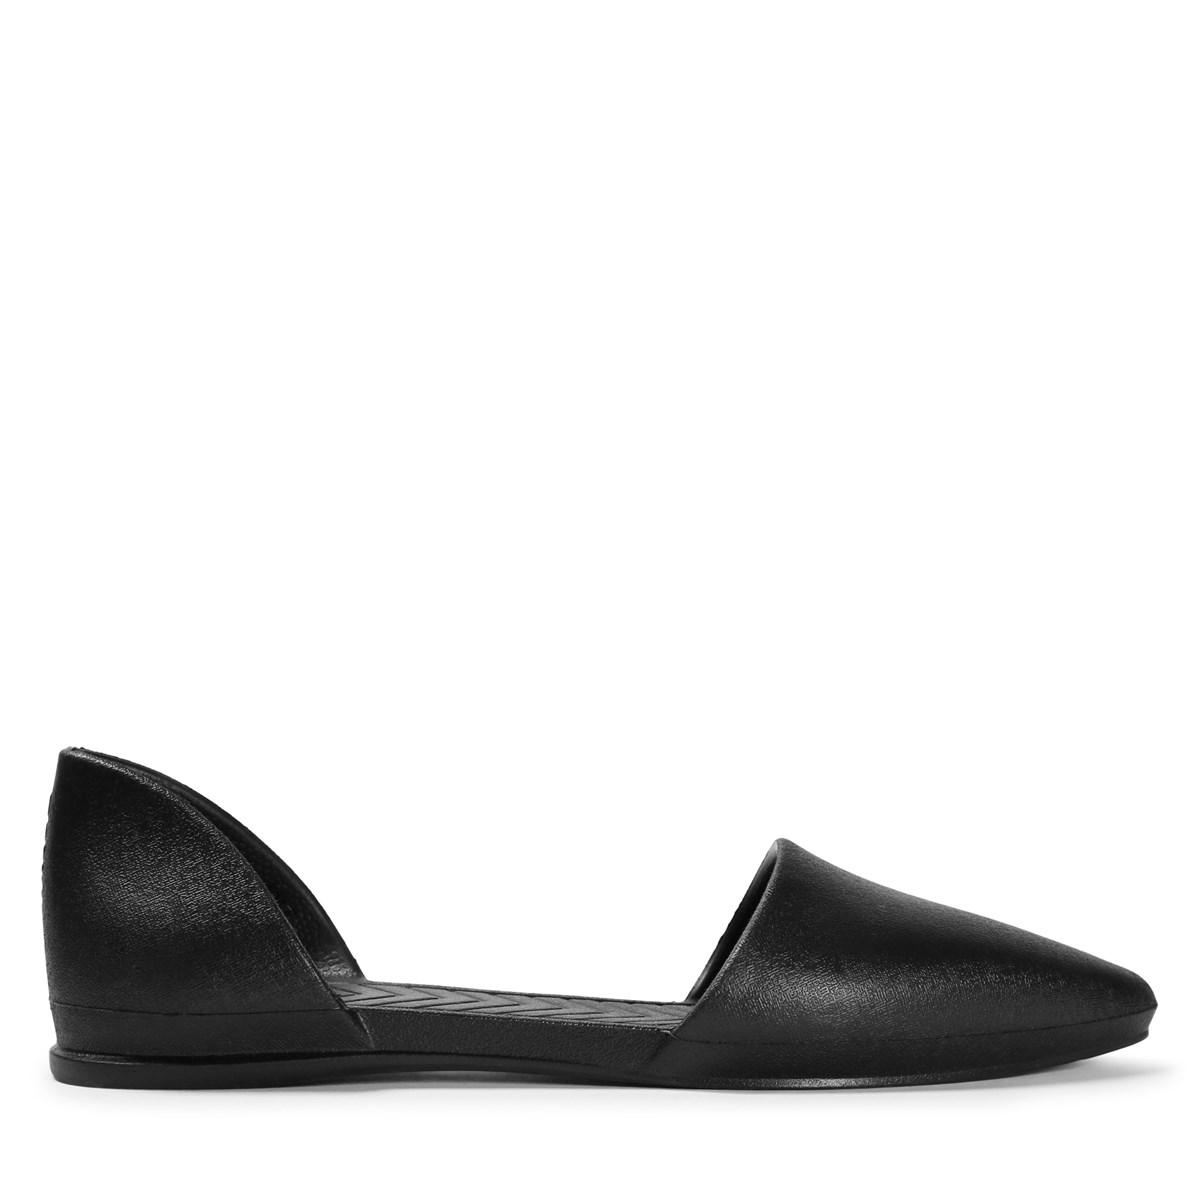 Women's Audrey Jiffy Slip-Ons in Black